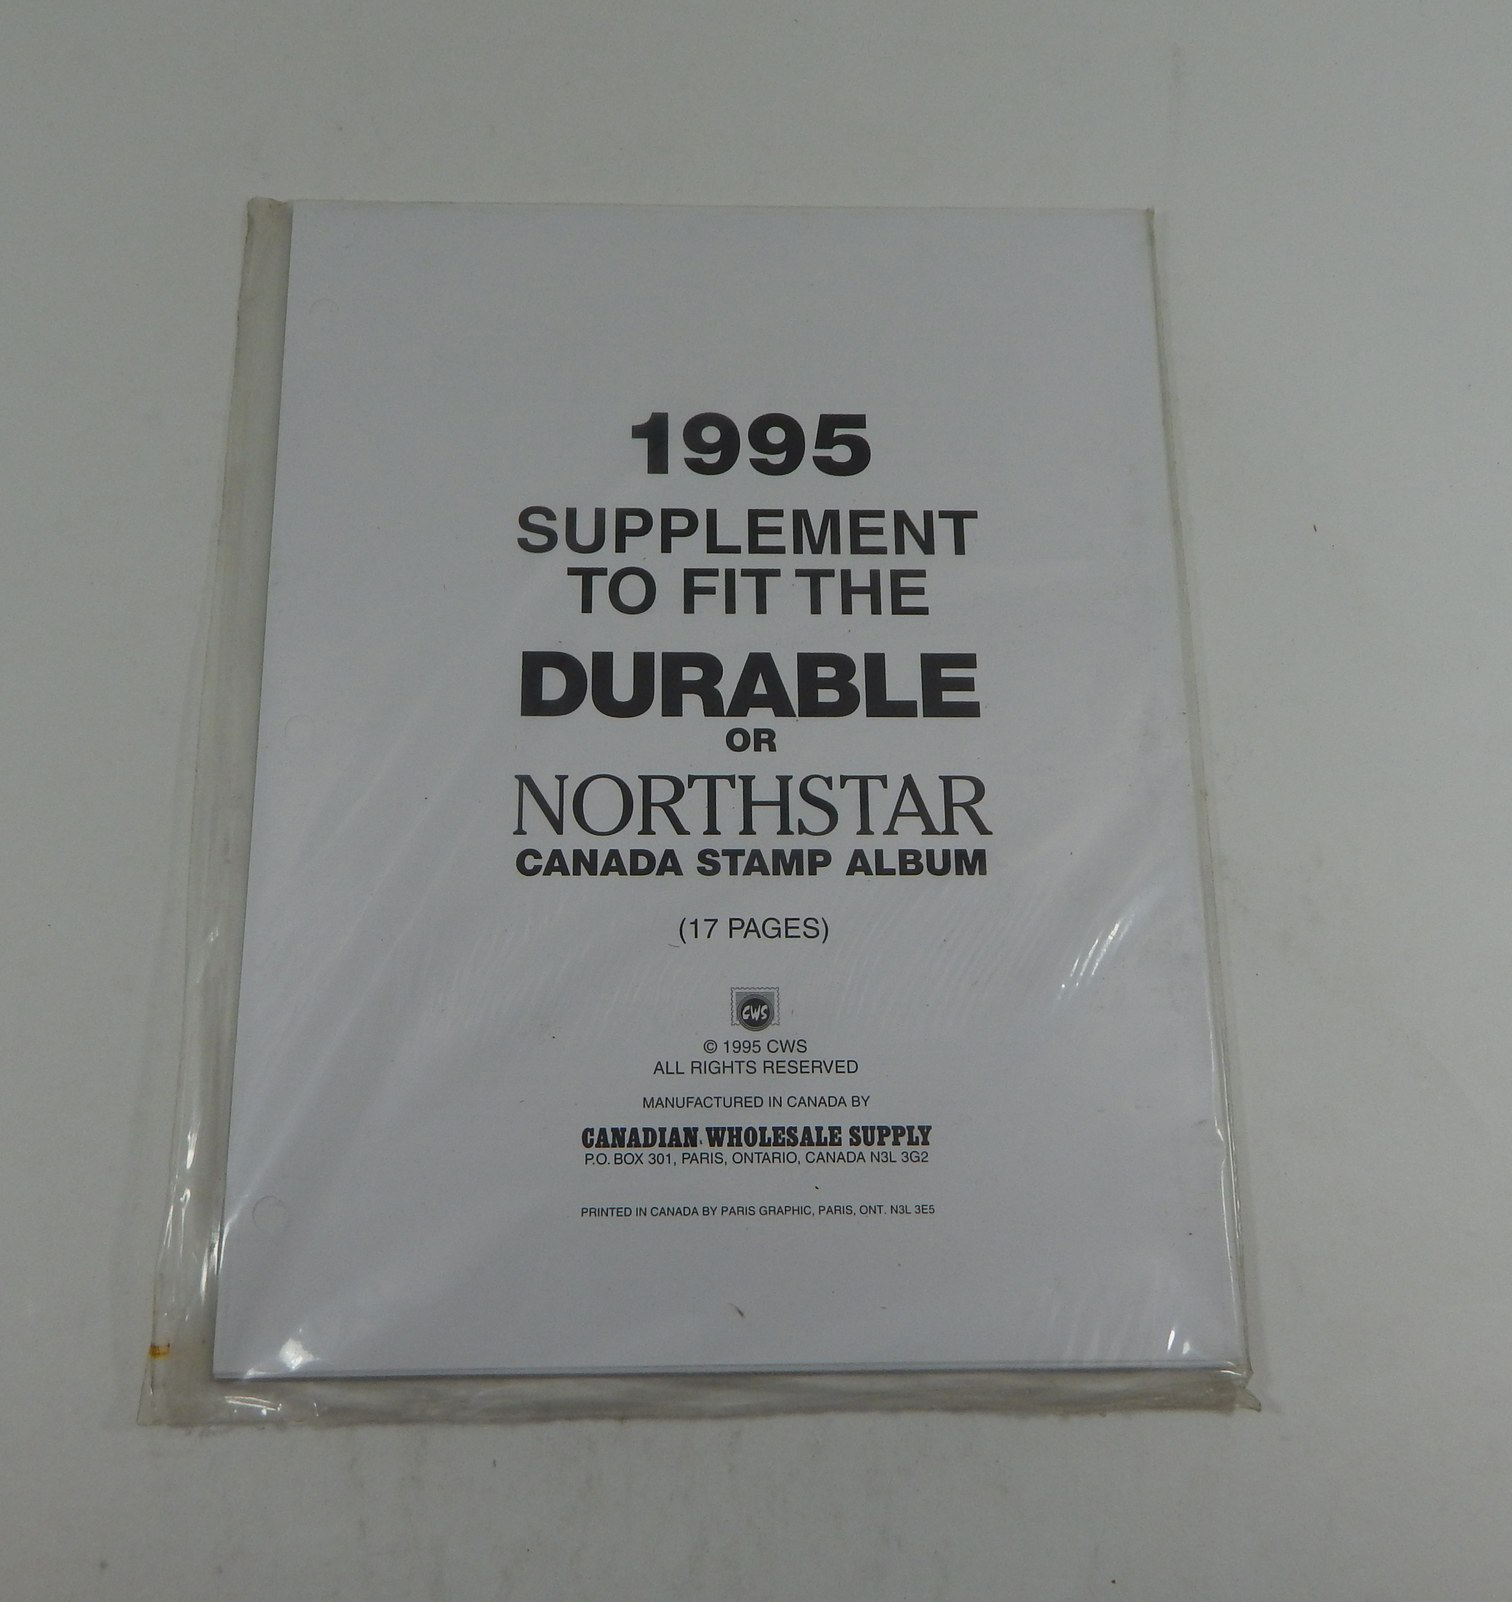 Canadian Wholesale Supply Durable Northstar Canada Stamp Album 1995